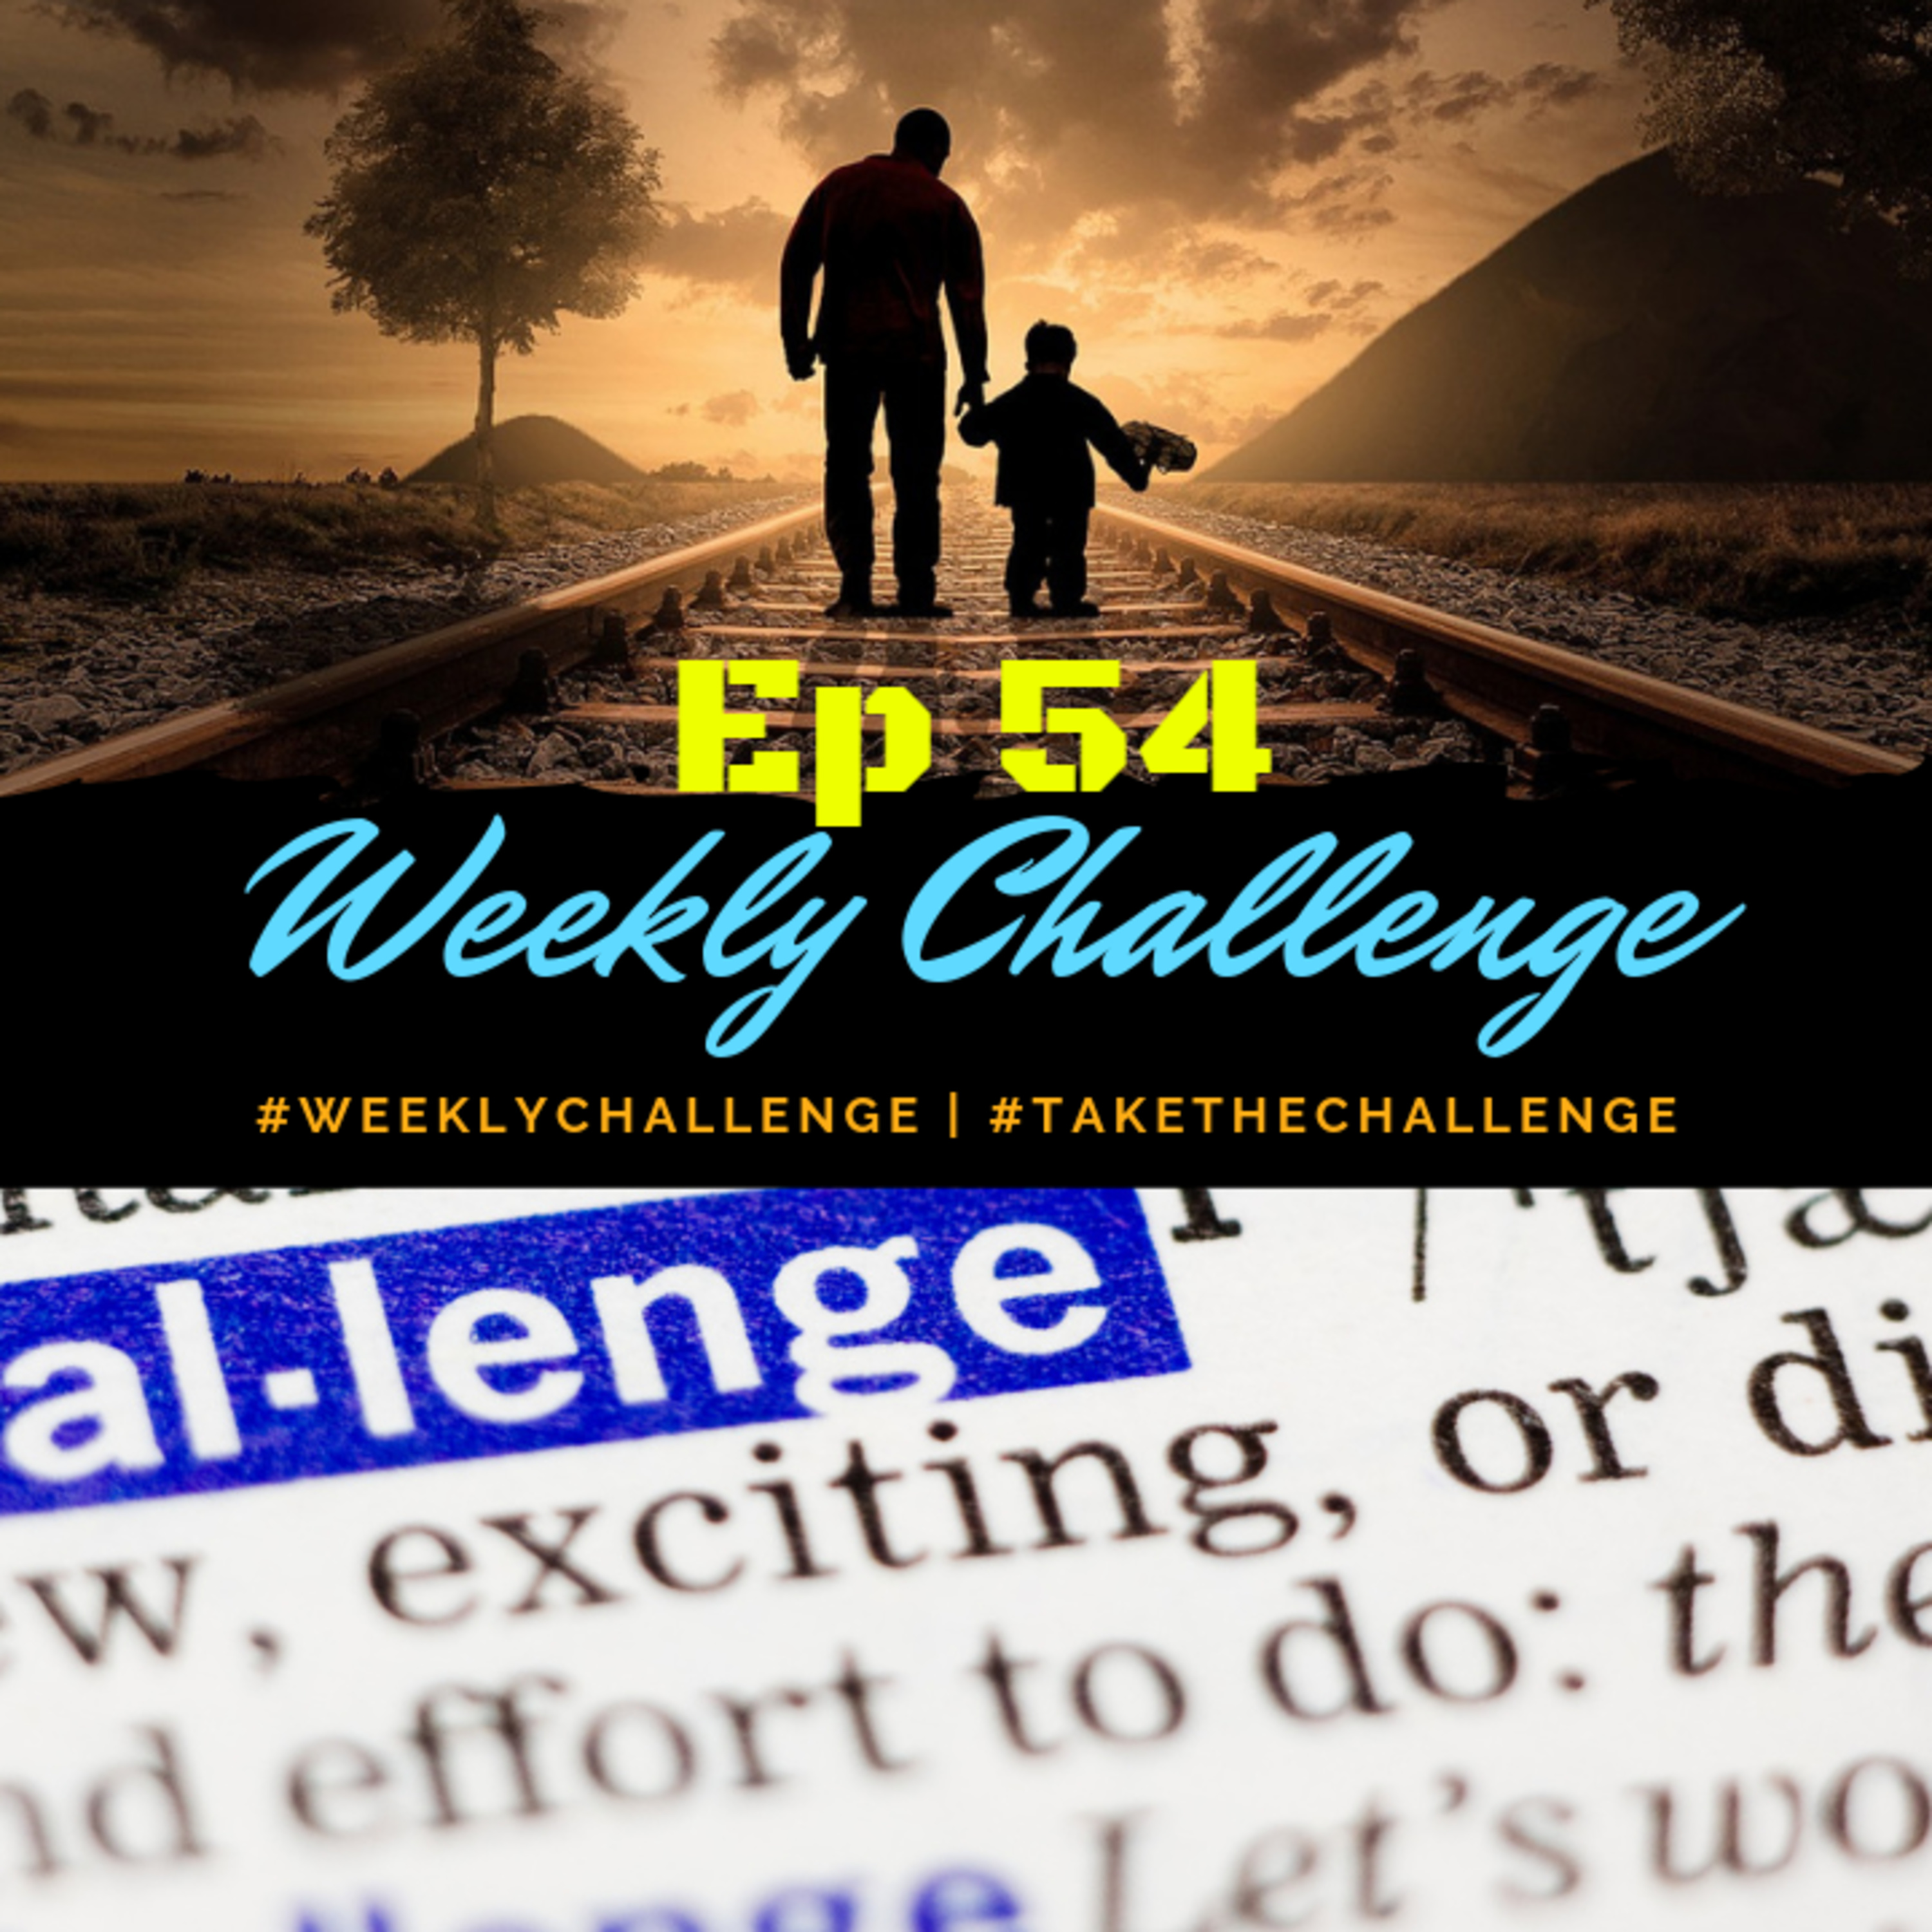 Weekly Challenge | From Ep 54 With Clay Green, On Gratitude